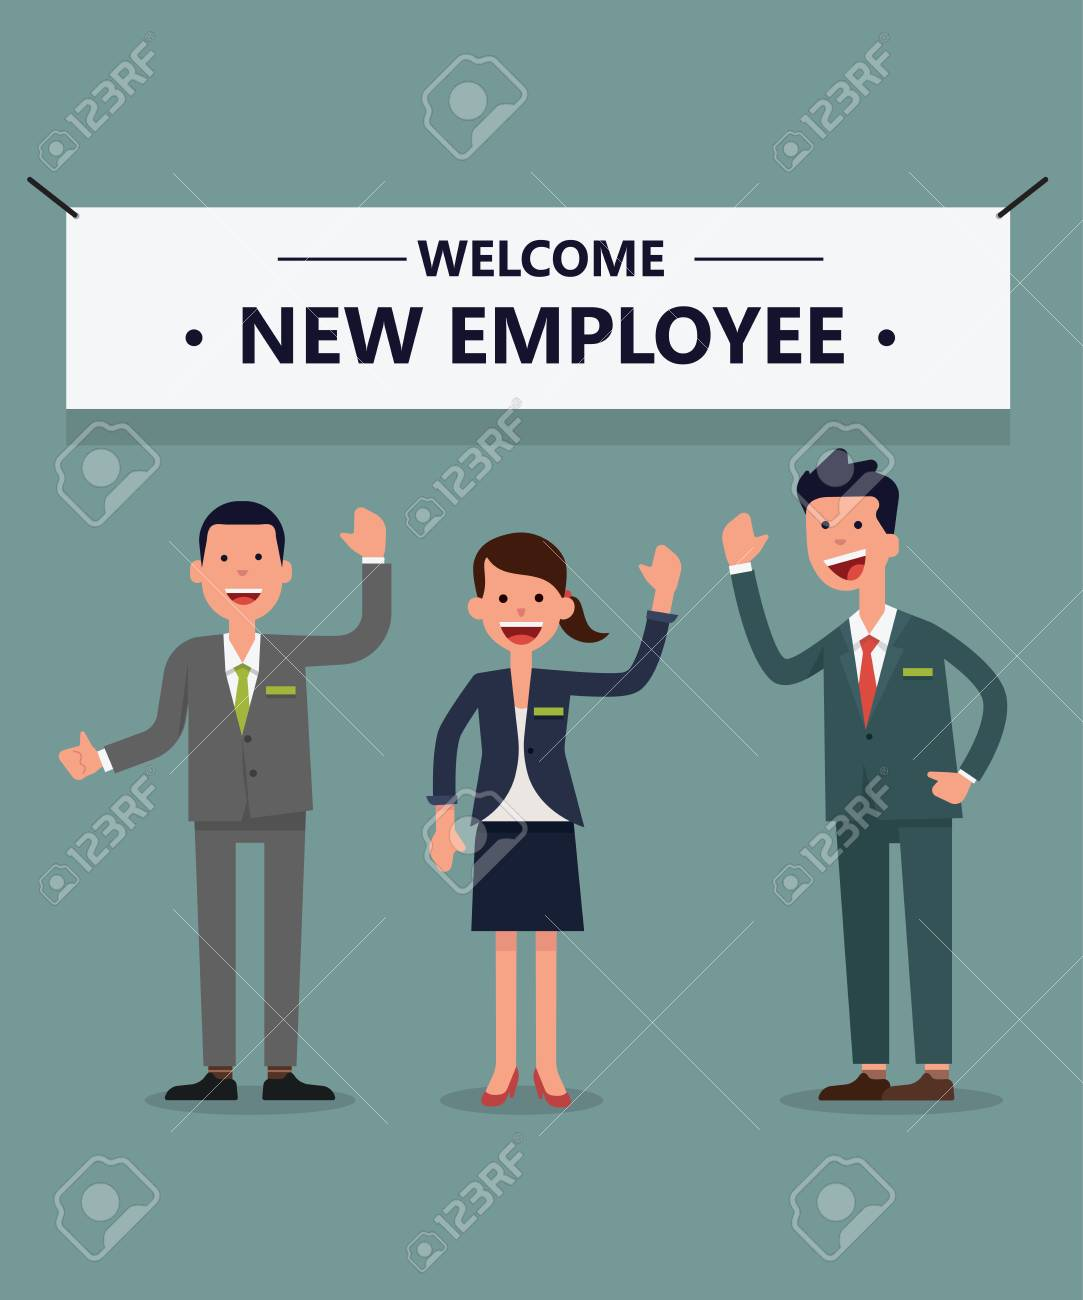 Welcome new employee royalty free cliparts vectors and stock welcome new employee thecheapjerseys Choice Image